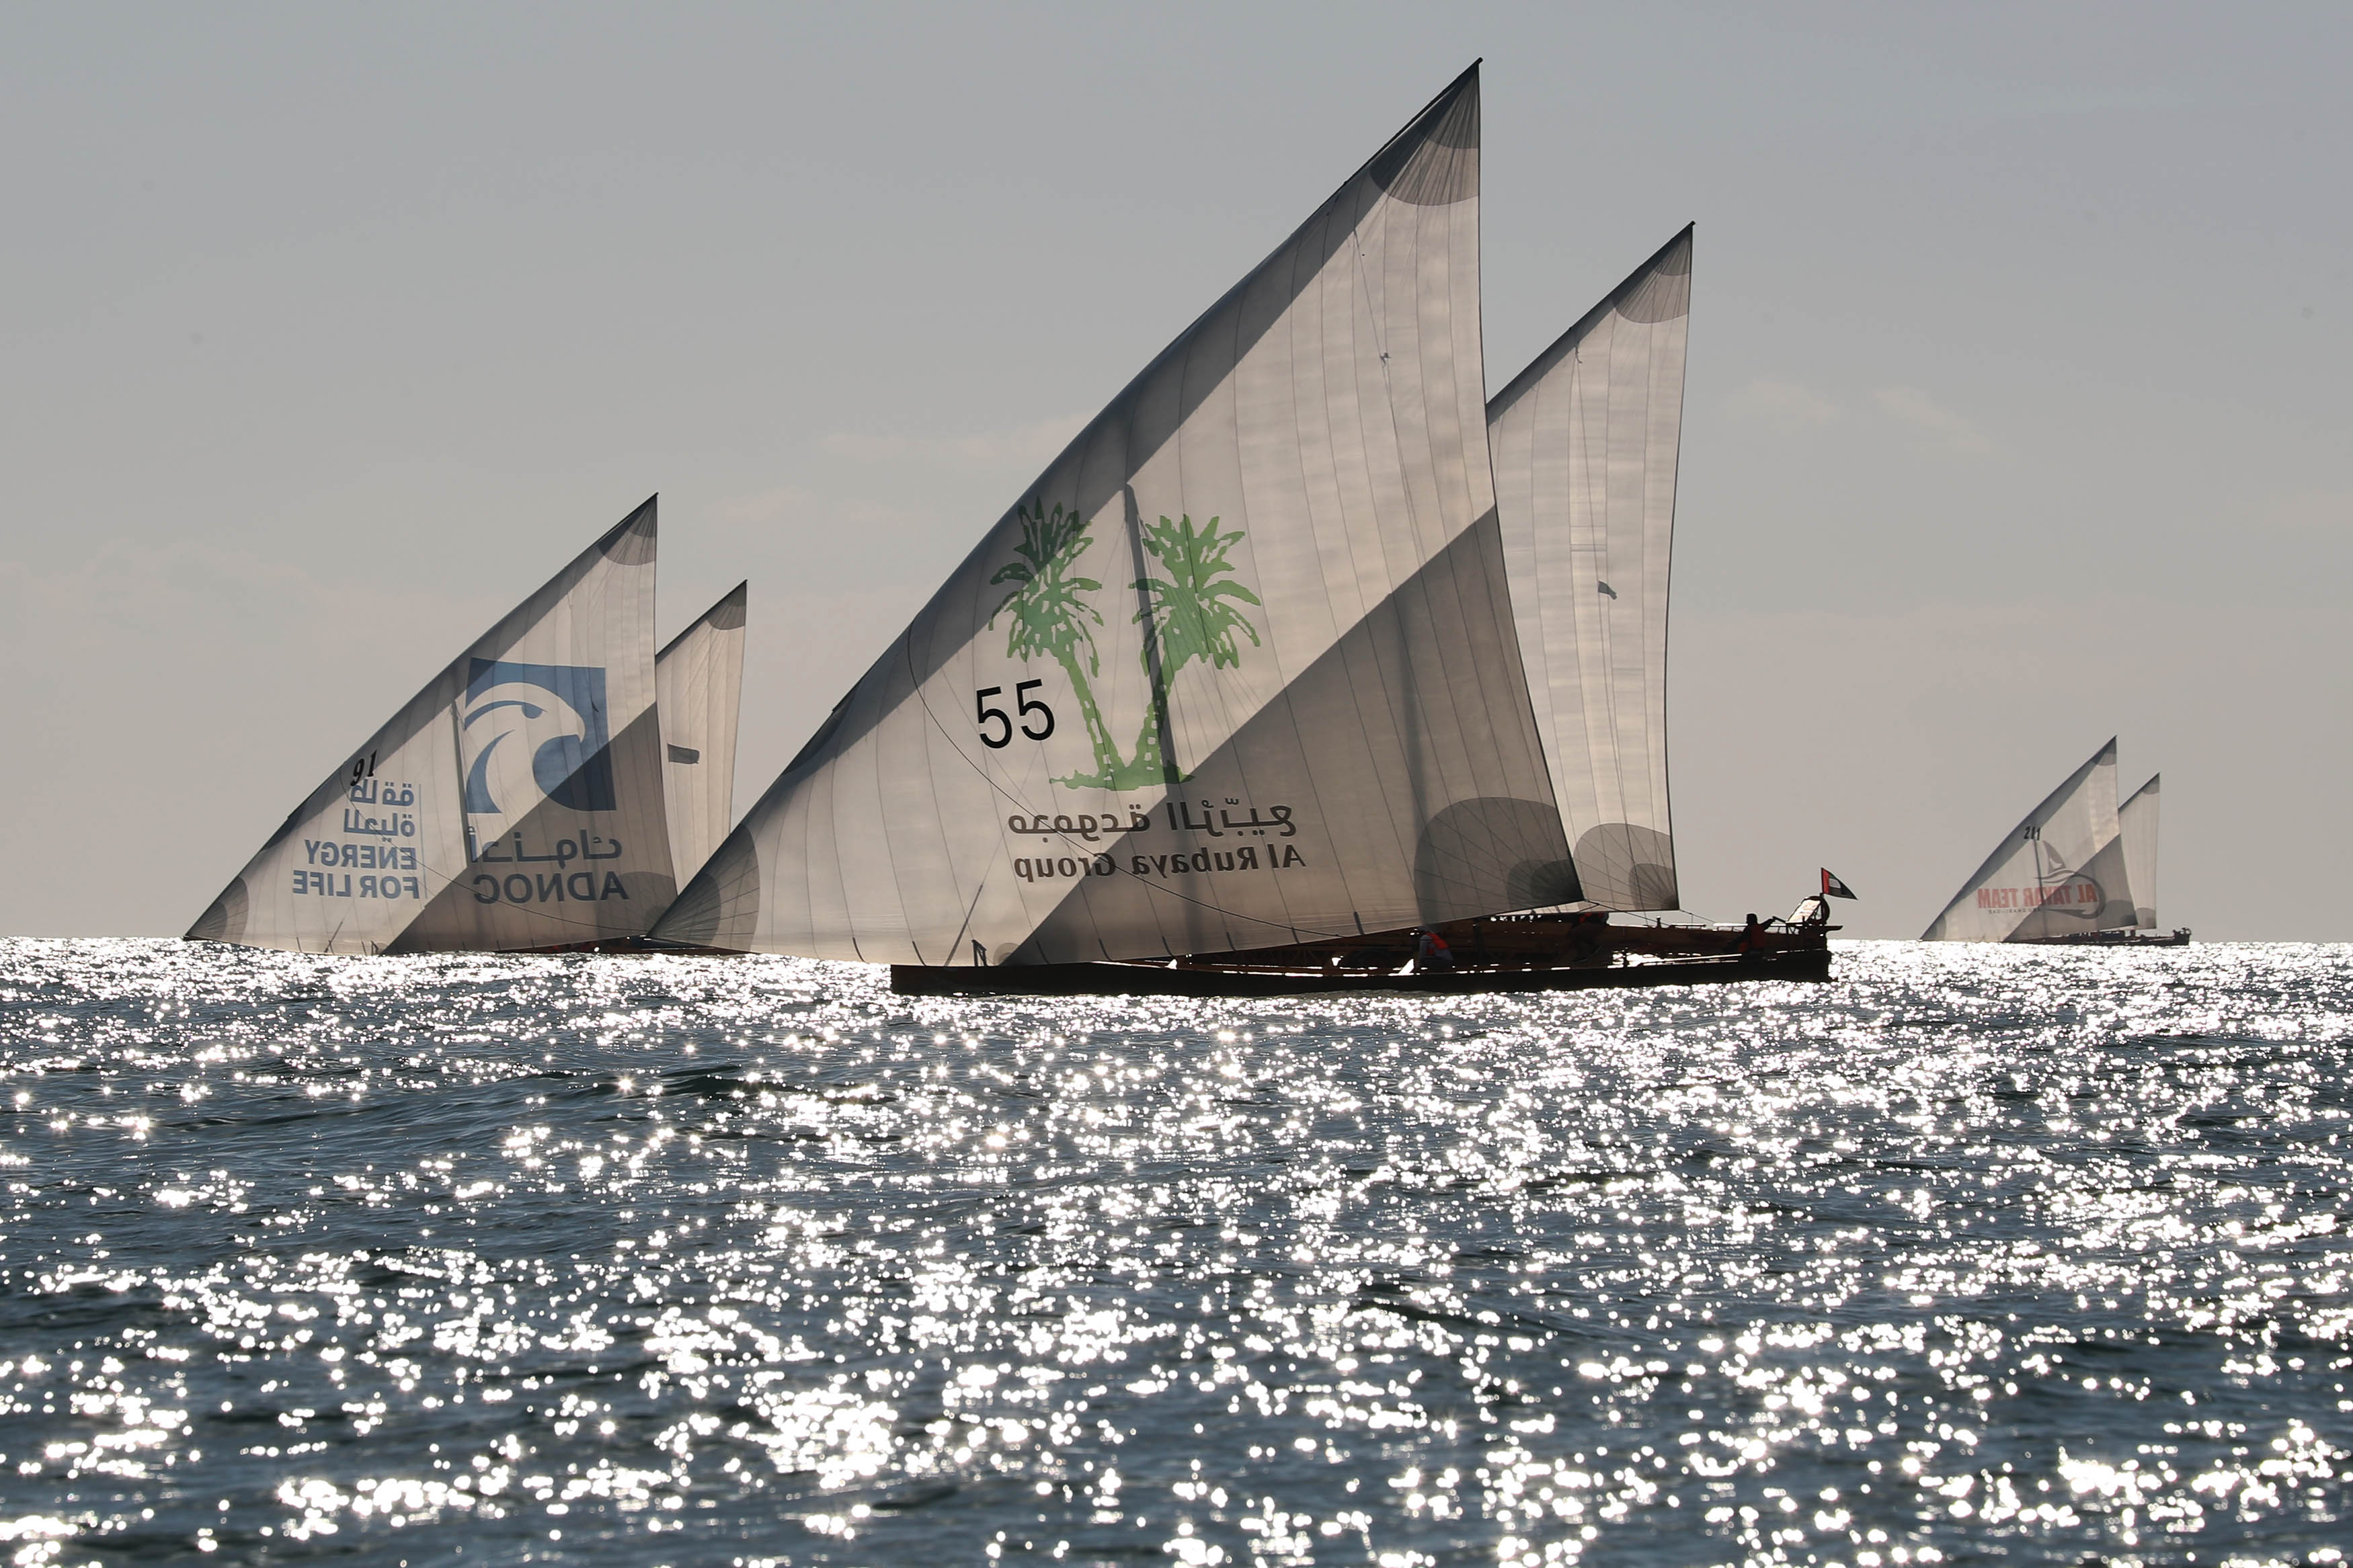 Al Tabr 55 tops the 60ft Dhow Race Overall